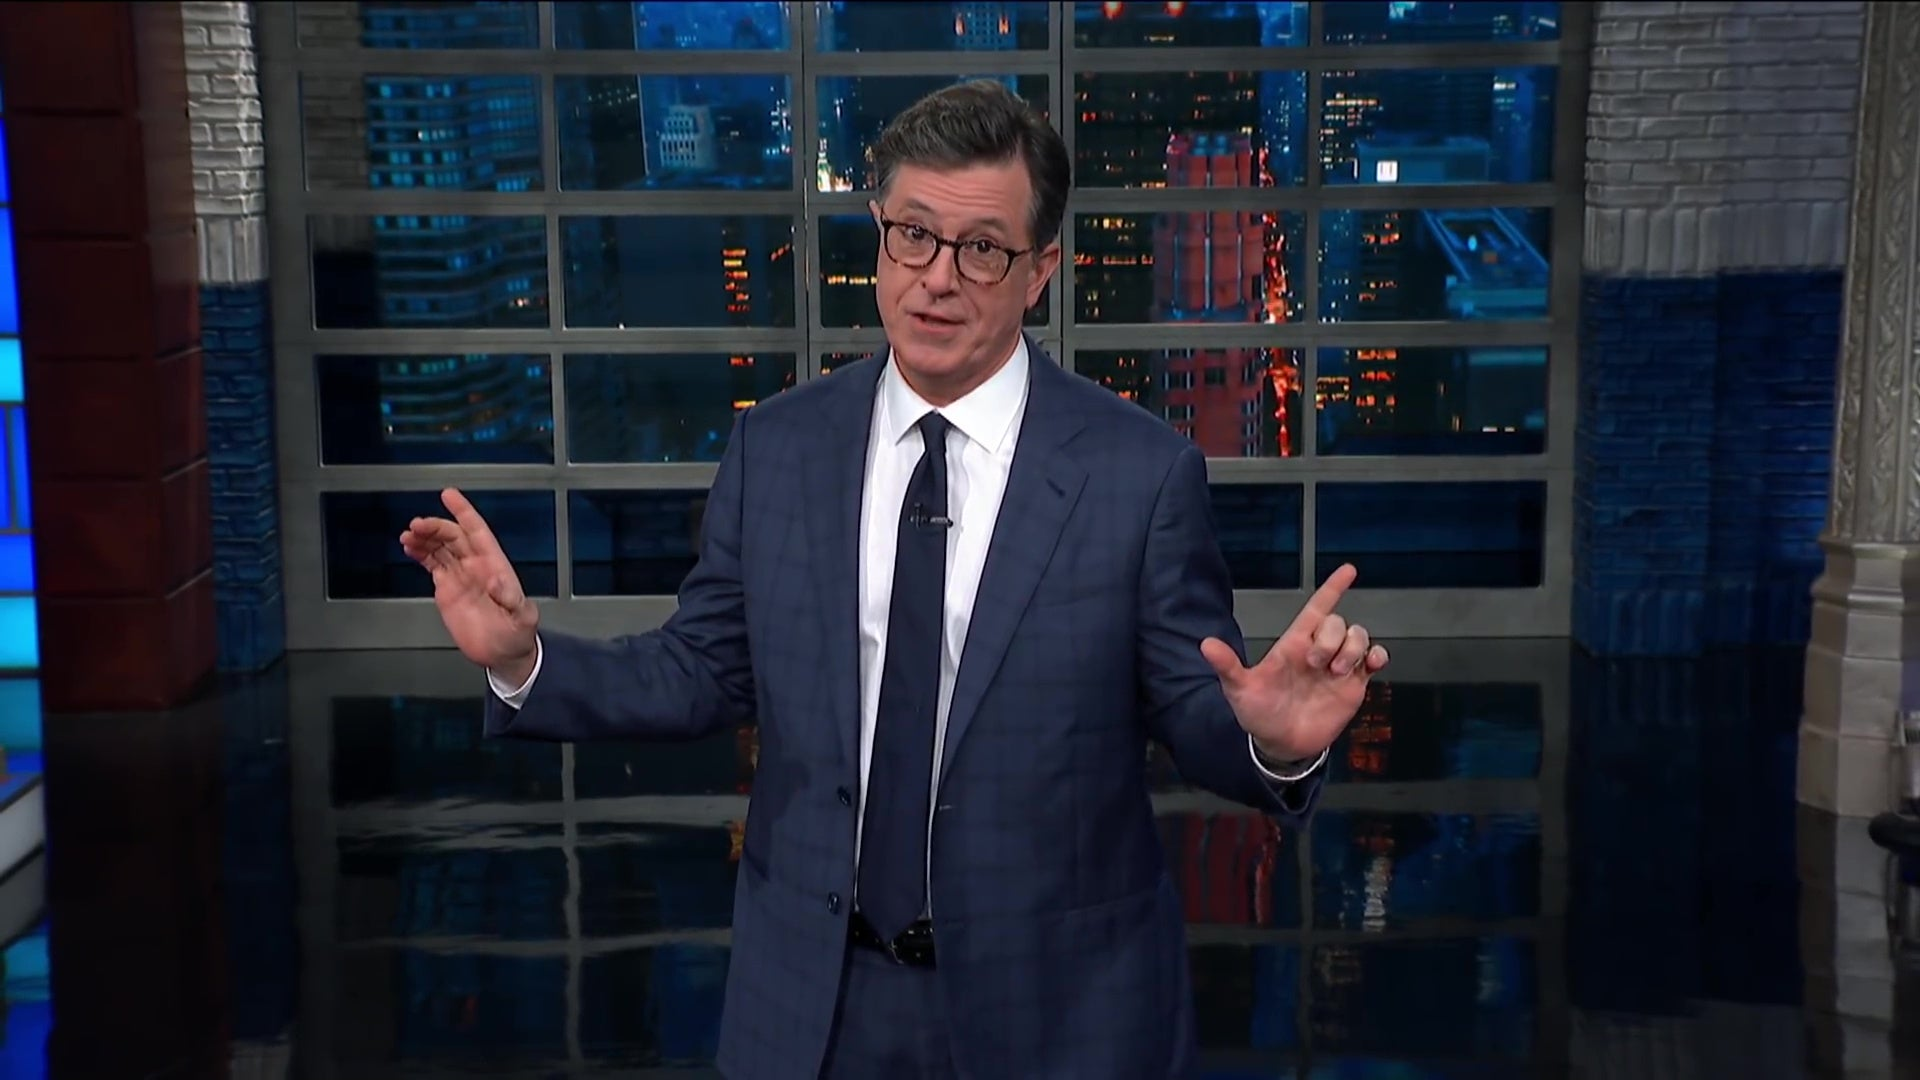 Stephen Colbert delivers a late night monologue.